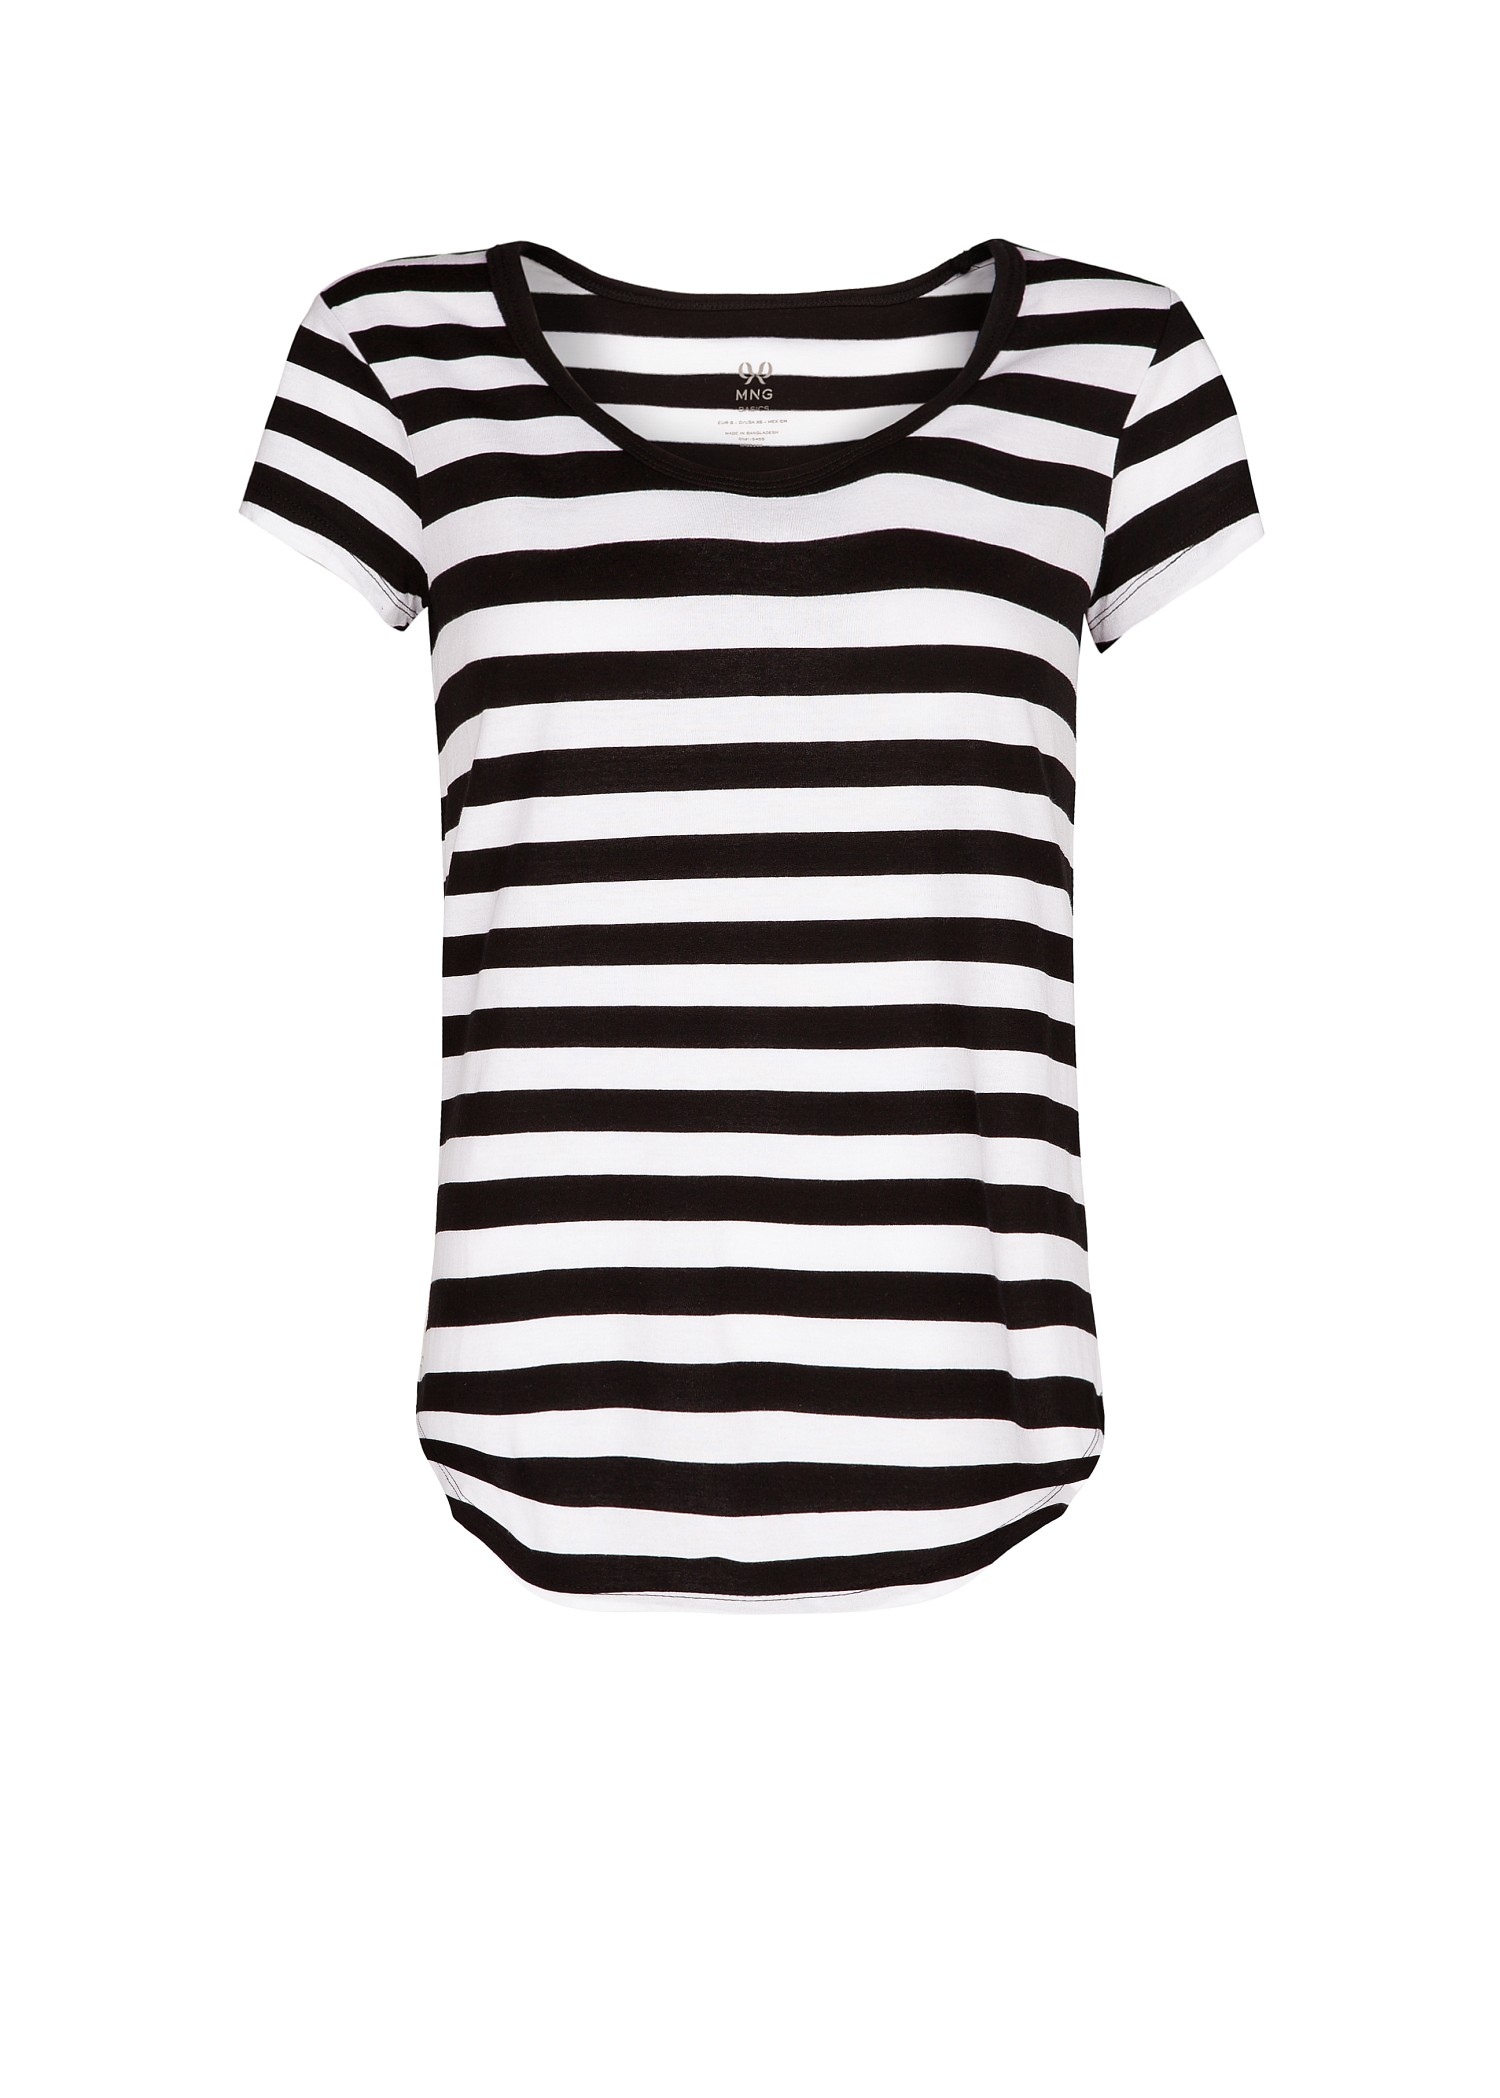 Womens Black And White Striped Shirt Long Sleeve